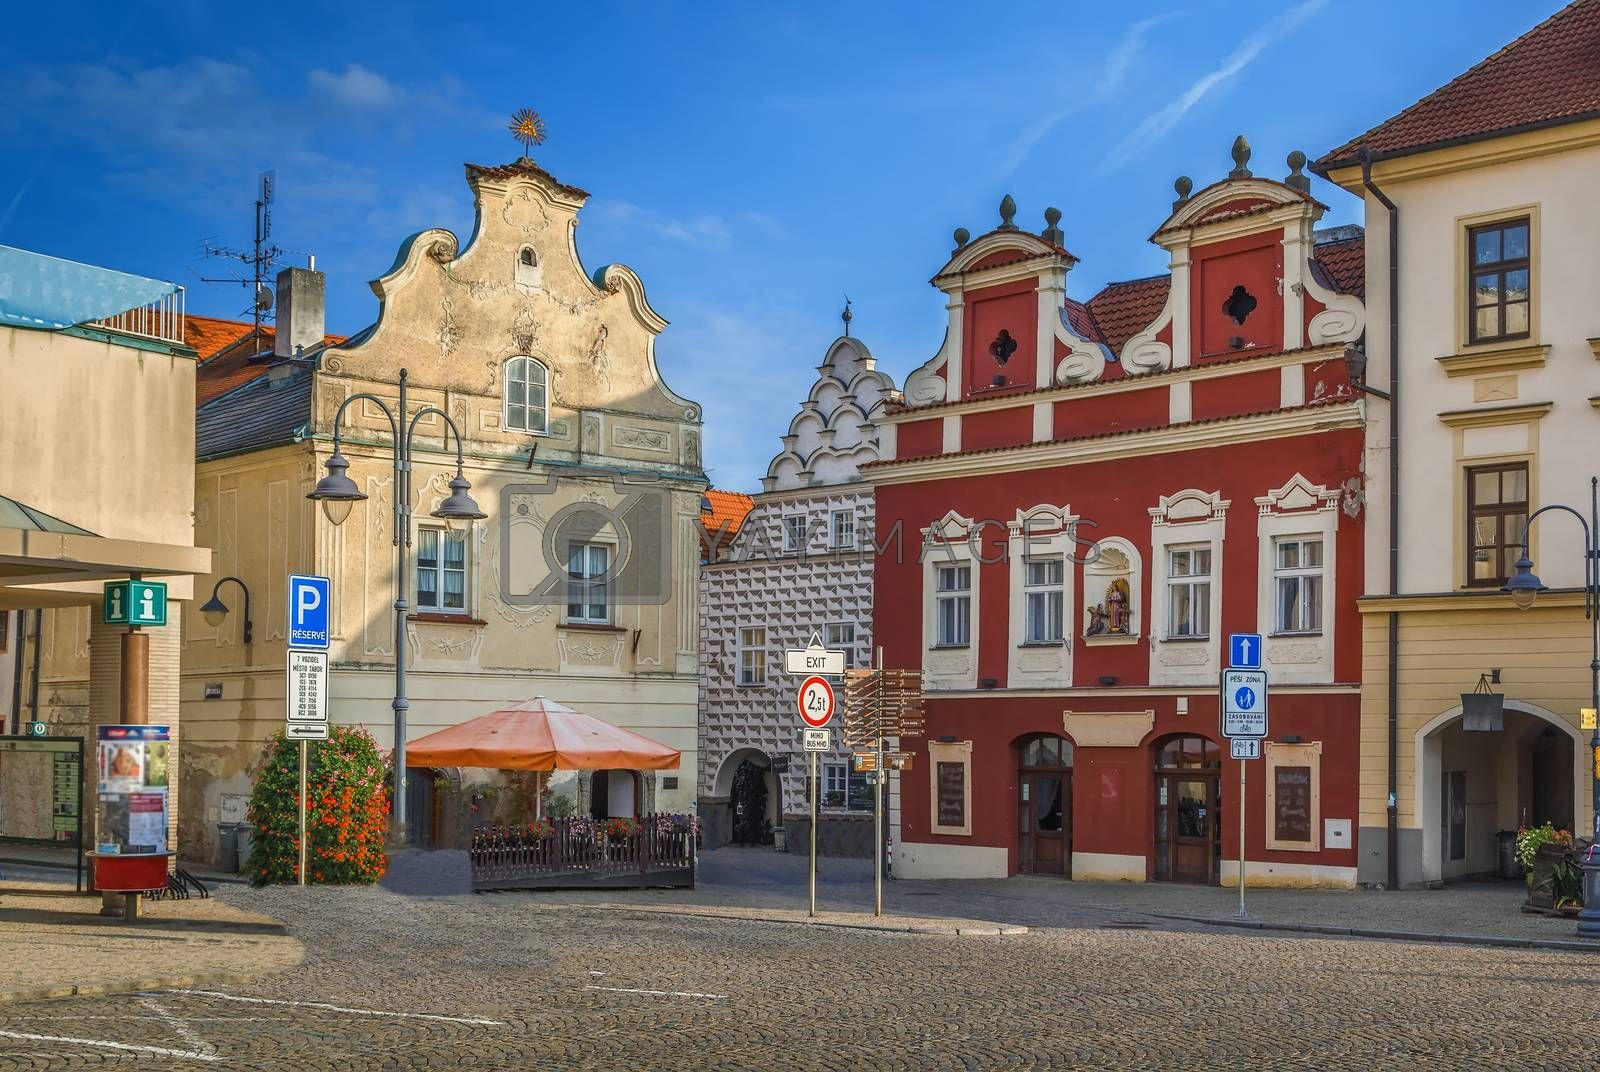 Main square of Tabor, Czech Republic by borisb17